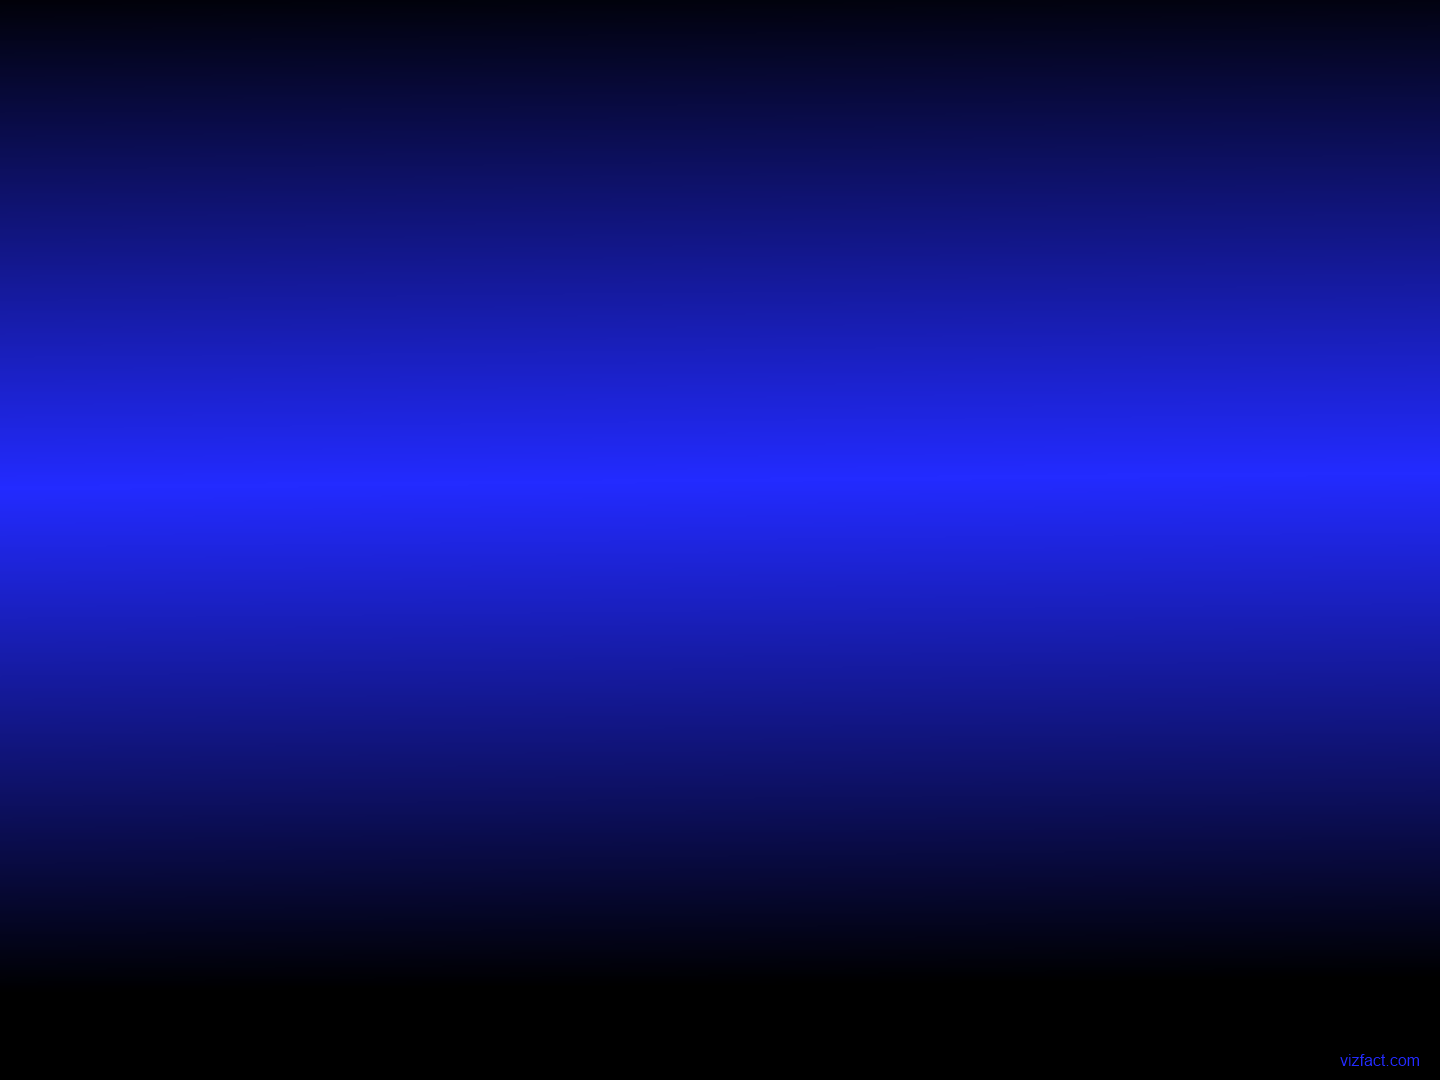 Desktop Background Wallpaper Blue Black Gradient VizFact Dot Com 1440x1080